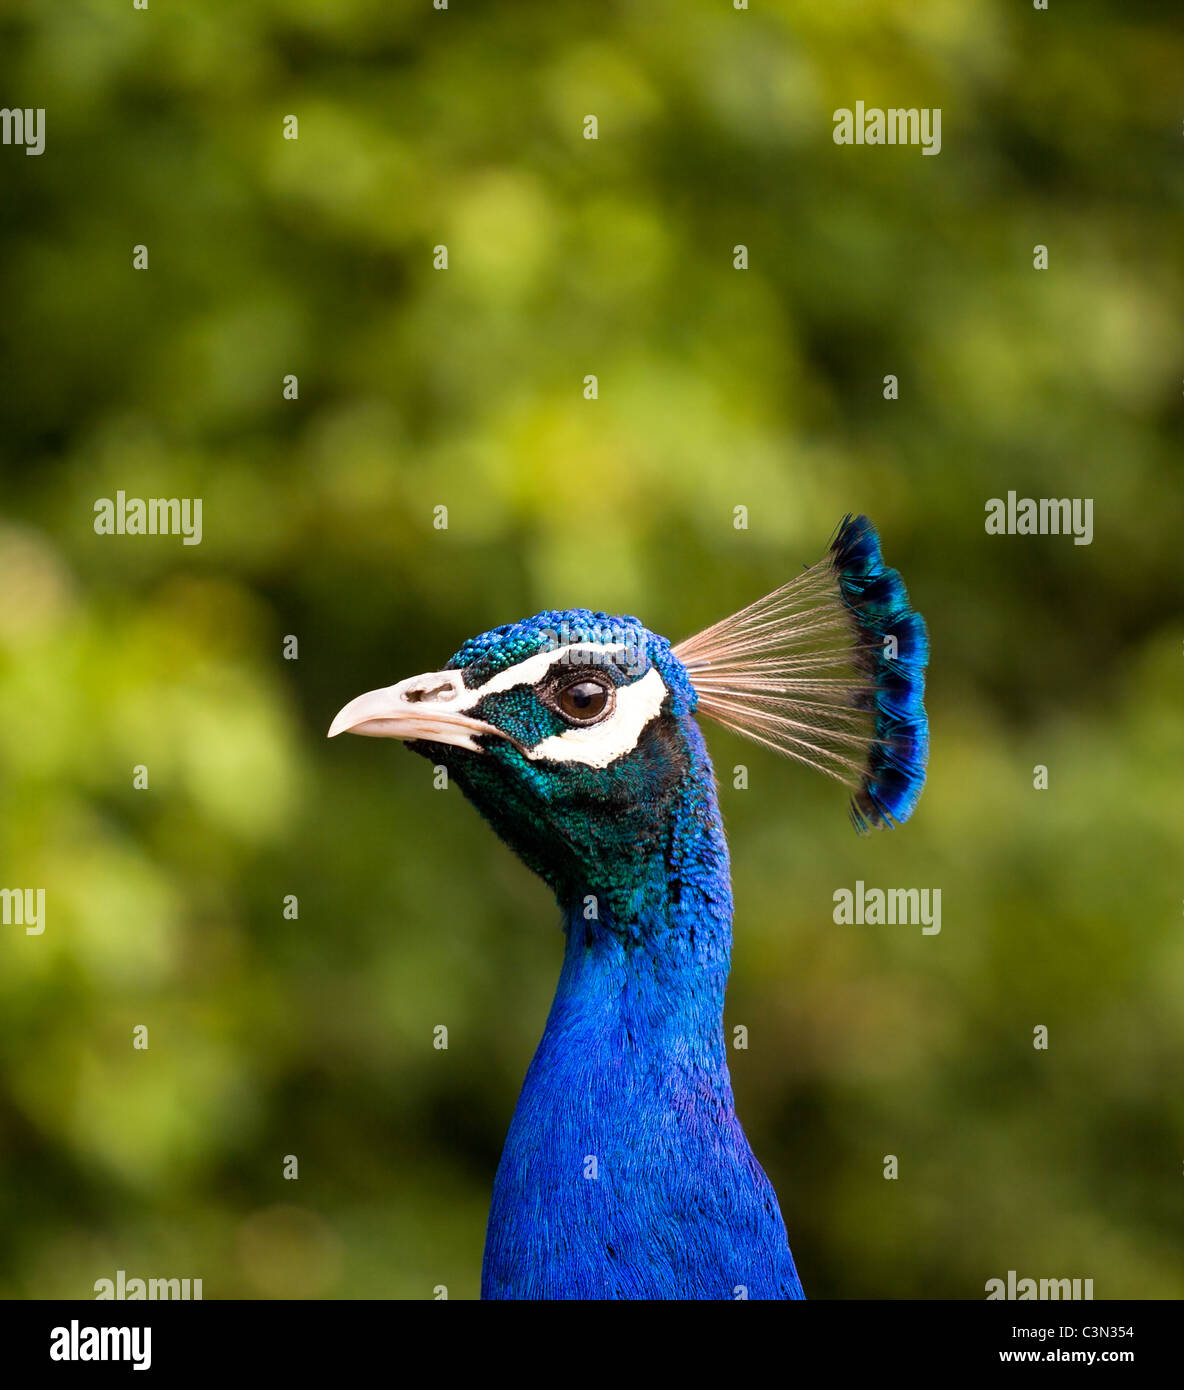 Profile view of a Peacock focusing on the bird with a blurred out background Stock Photo